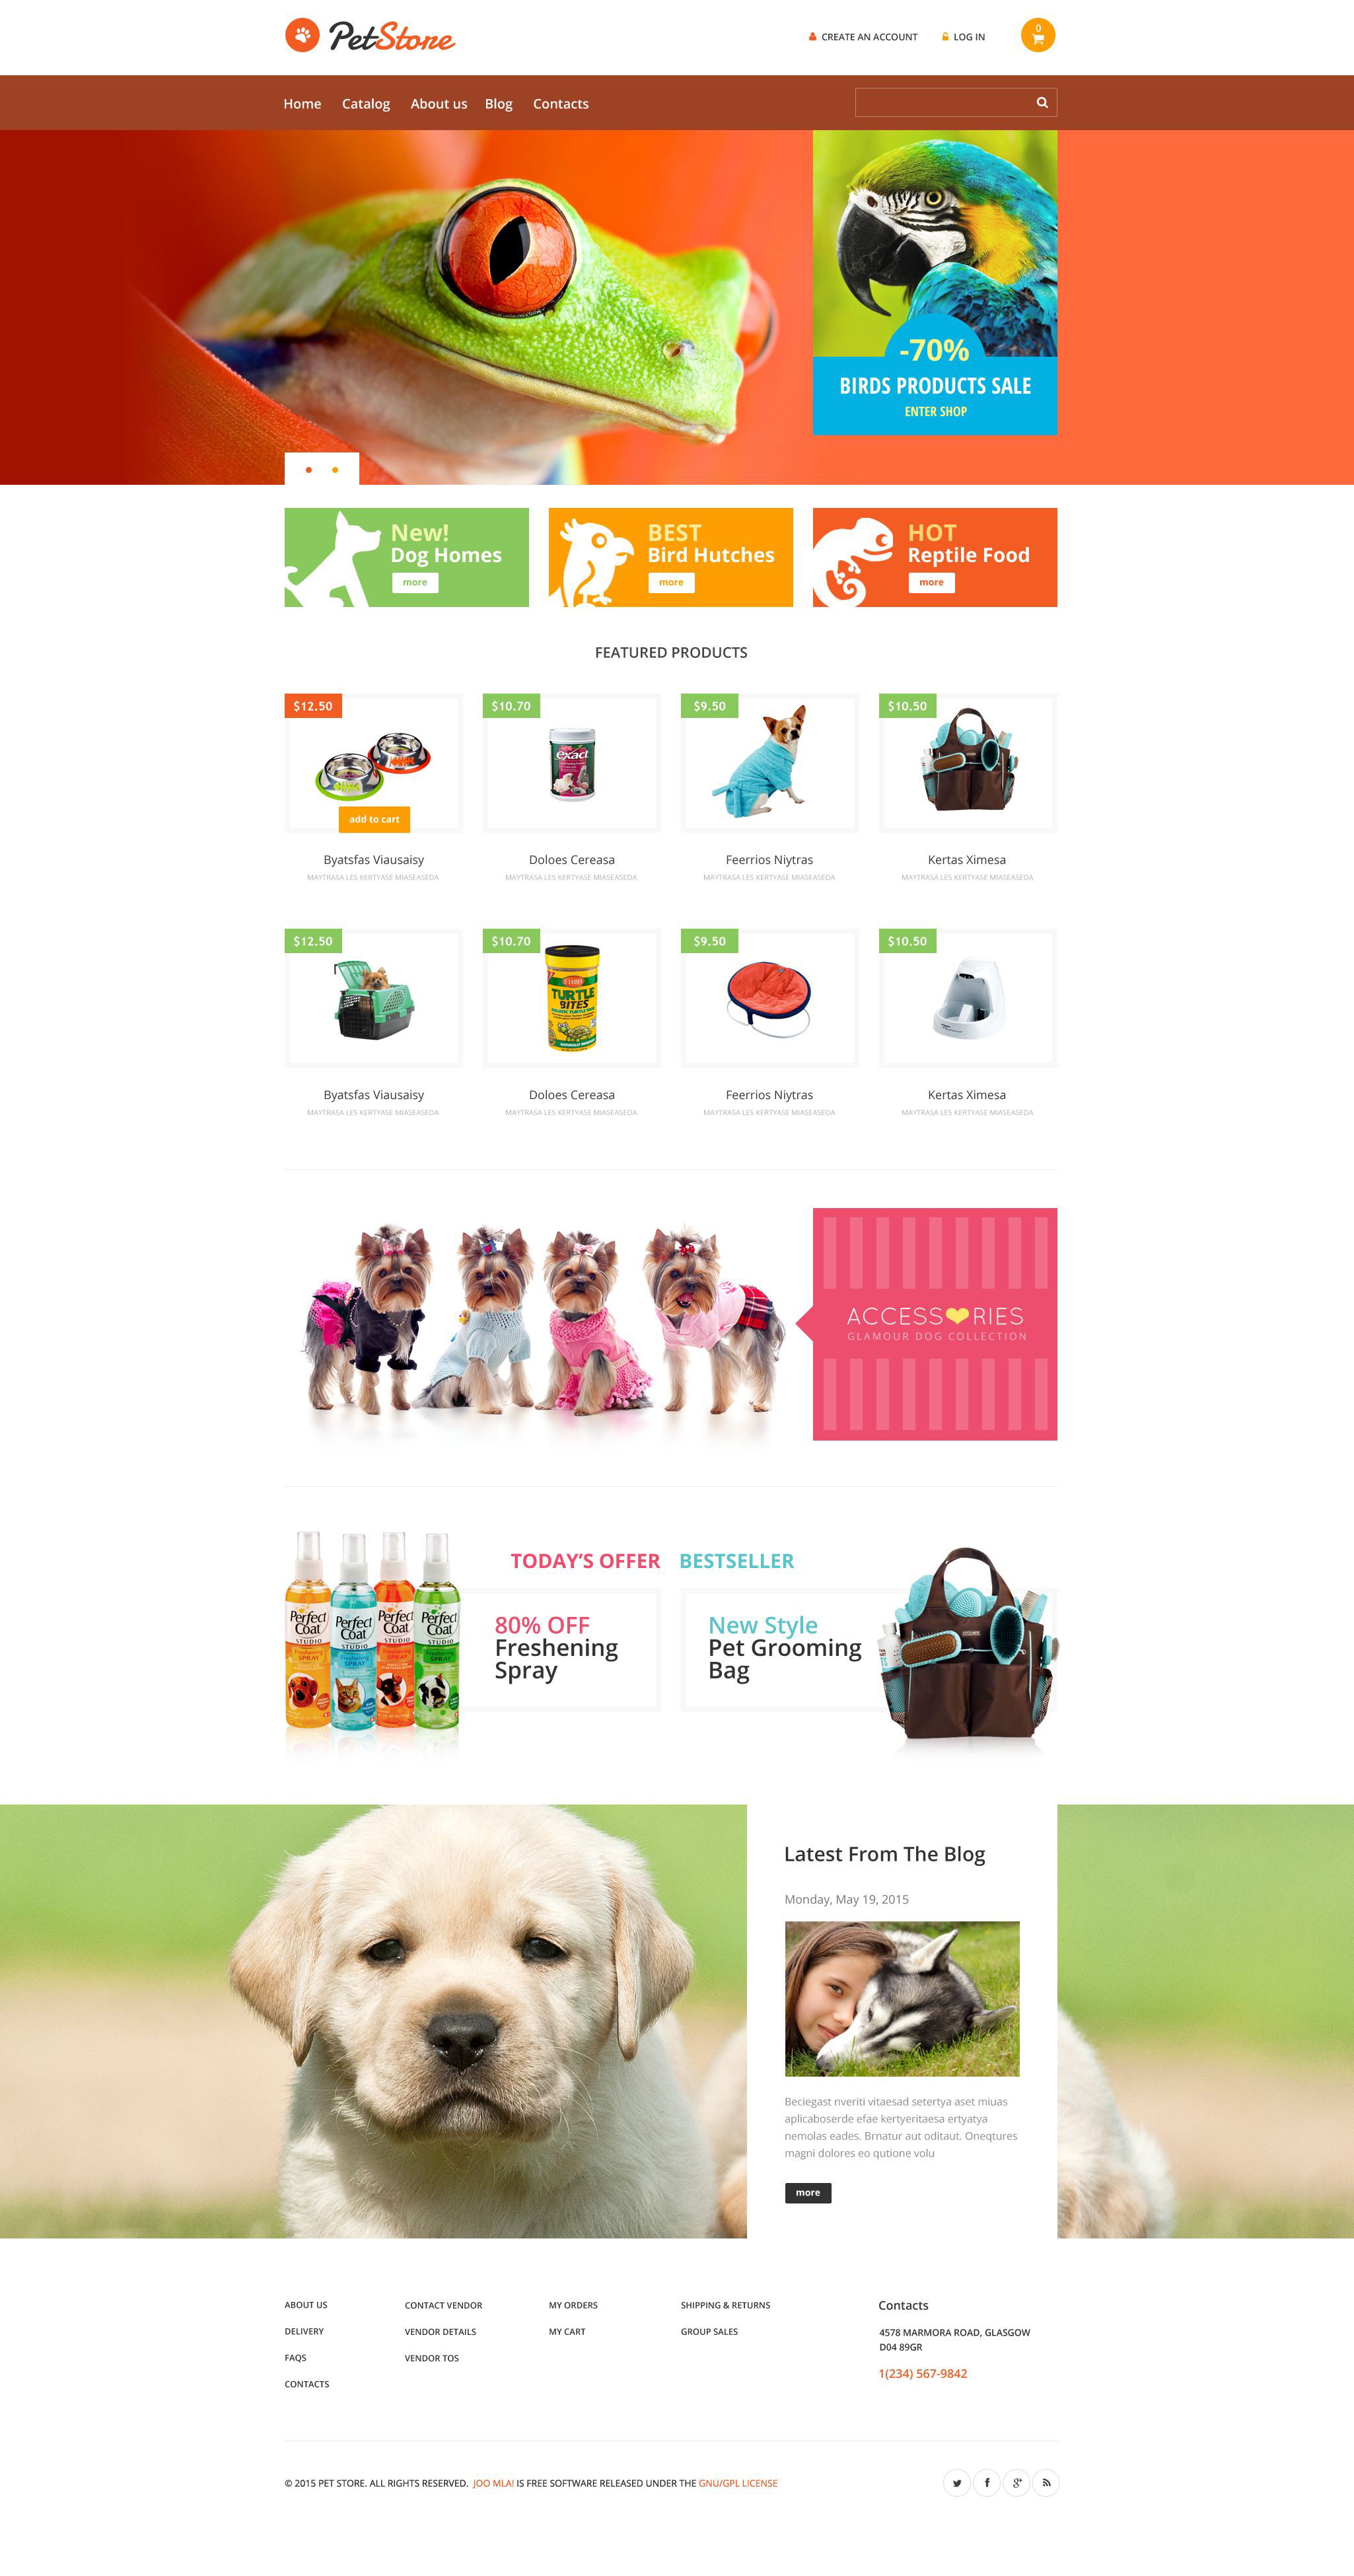 The Pets Store VirtueMart Design 53805, one of the best VirtueMart templates of its kind (animals & pets, most popular), also known as pets store VirtueMart template, online cat club VirtueMart template, kitten clinical VirtueMart template, veterinary VirtueMart template, vet VirtueMart template, tips VirtueMart template, feed VirtueMart template, medicine VirtueMart template, staff VirtueMart template, services VirtueMart template, breed VirtueMart template, age VirtueMart template, color VirtueMart template, accommodation VirtueMart template, adaptable VirtueMart template, pet VirtueMart template, apparel VirtueMart template, bed VirtueMart template, dishes VirtueMart template, bowl VirtueMart template, bone VirtueMart template, cleanup VirtueMart template, collar VirtueMart template, flea VirtueMart template, tick VirtueMart template, grooming VirtueMart template, supplies VirtueMart template, vitamins VirtueMart template, recommendation VirtueMart template, health VirtueMart template, leash and related with pets store, online cat club, kitten clinical, veterinary, vet, tips, feed, medicine, staff, services, breed, age, color, accommodation, adaptable, pet, apparel, bed, dishes, bowl, bone, cleanup, collar, flea, tick, grooming, supplies, vitamins, recommendation, health, leash, etc.